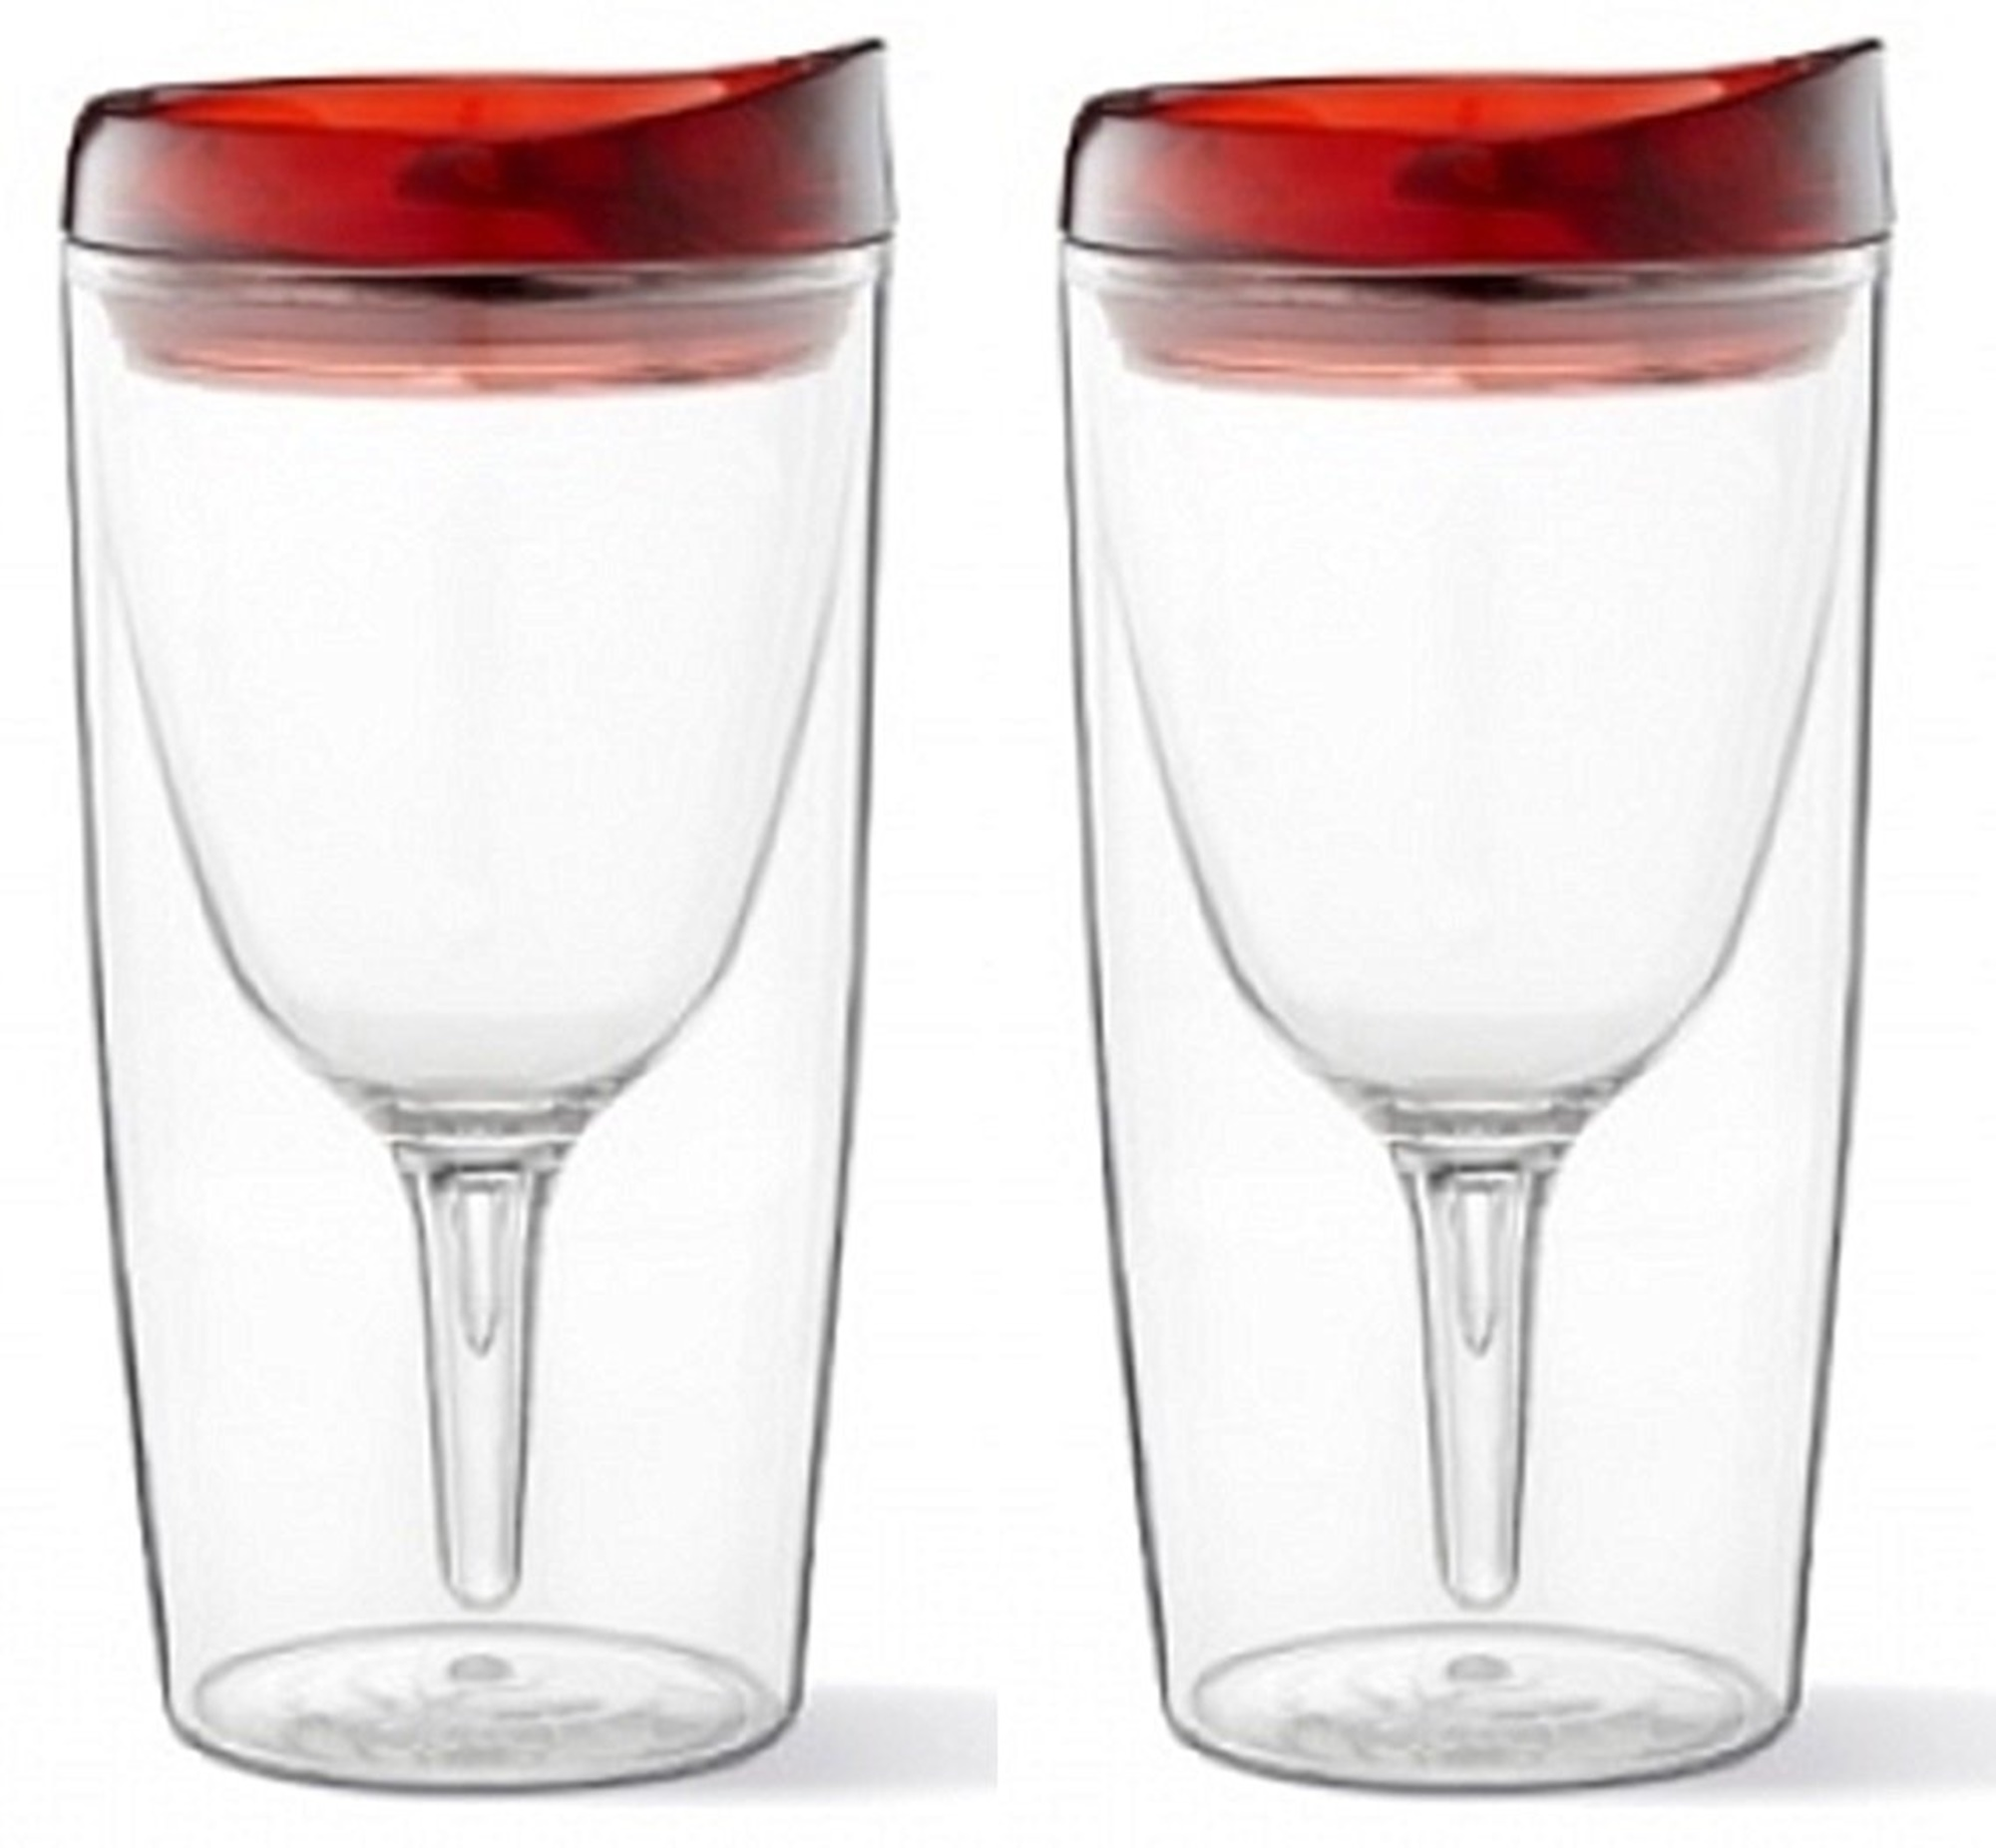 Vino2Go Double Wall Insulated Acrylic Wine Cup Tumbler with Deluxe Merlot Slide Top Drink Lid, 10 oz, Set of 2